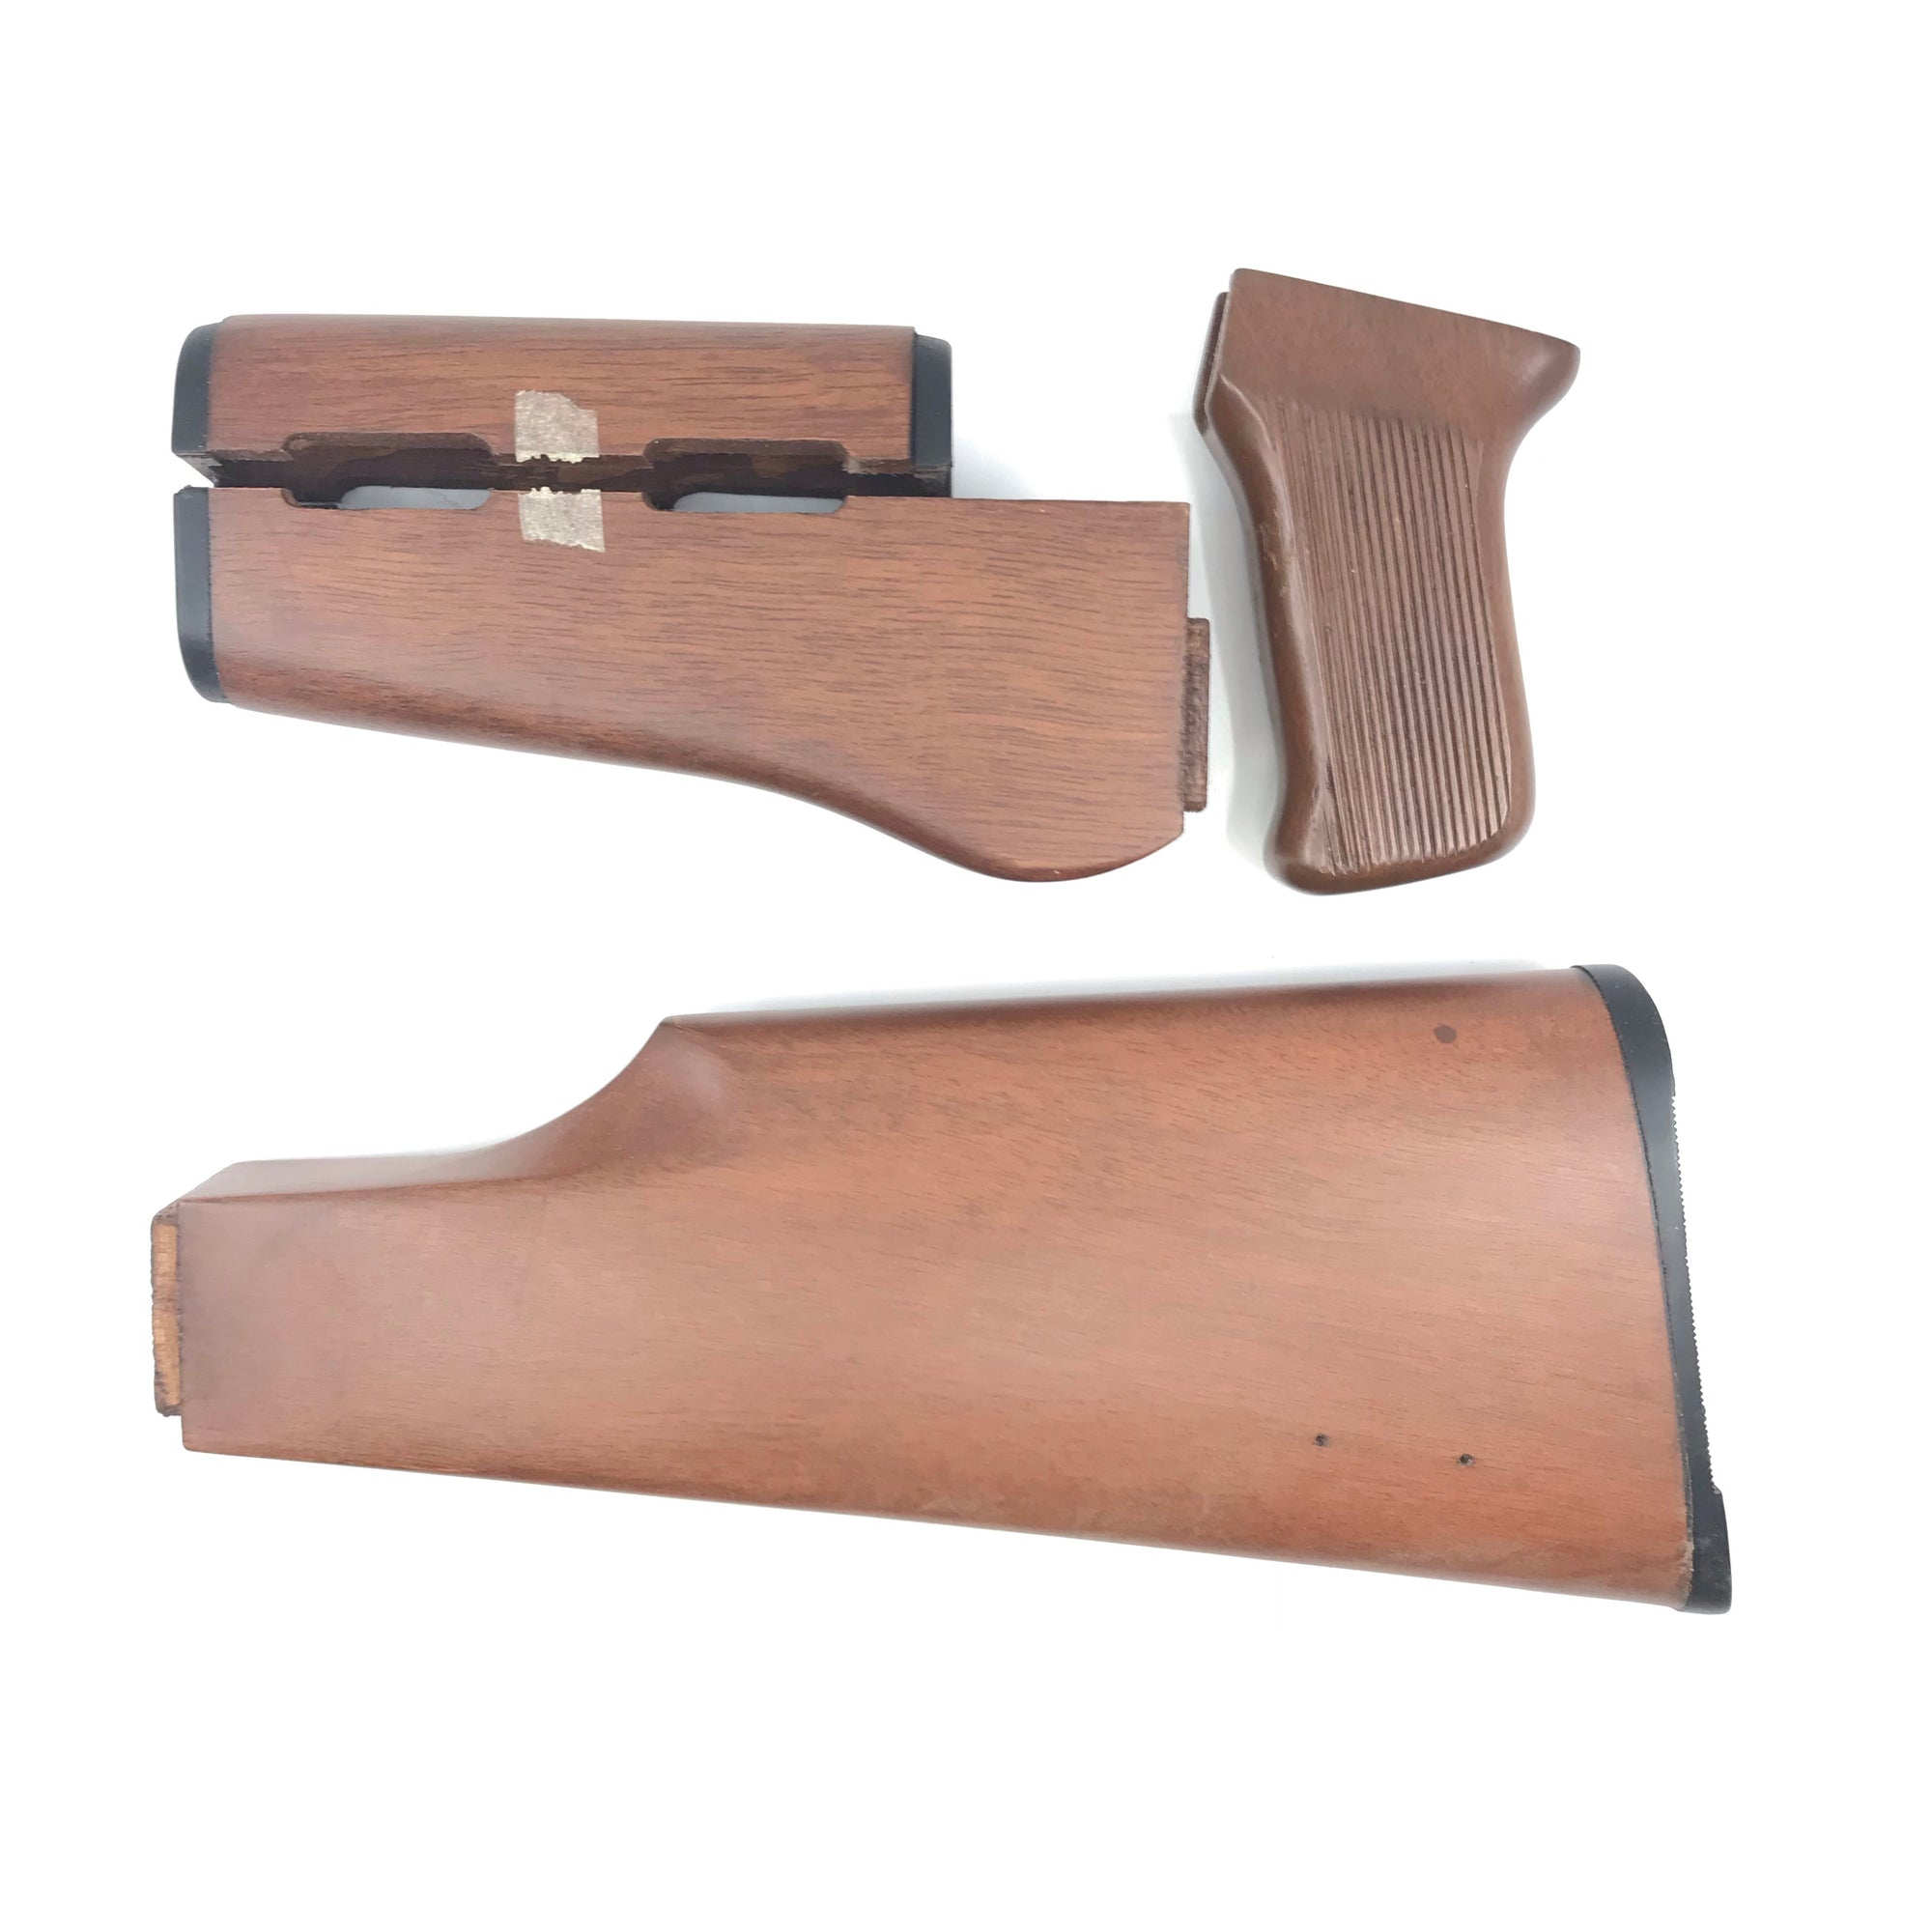 Squires Bingham AK22  22LR Semi Wood Butt Stock, Pistol Grip, 2 Piece Forearm 4 Pieces